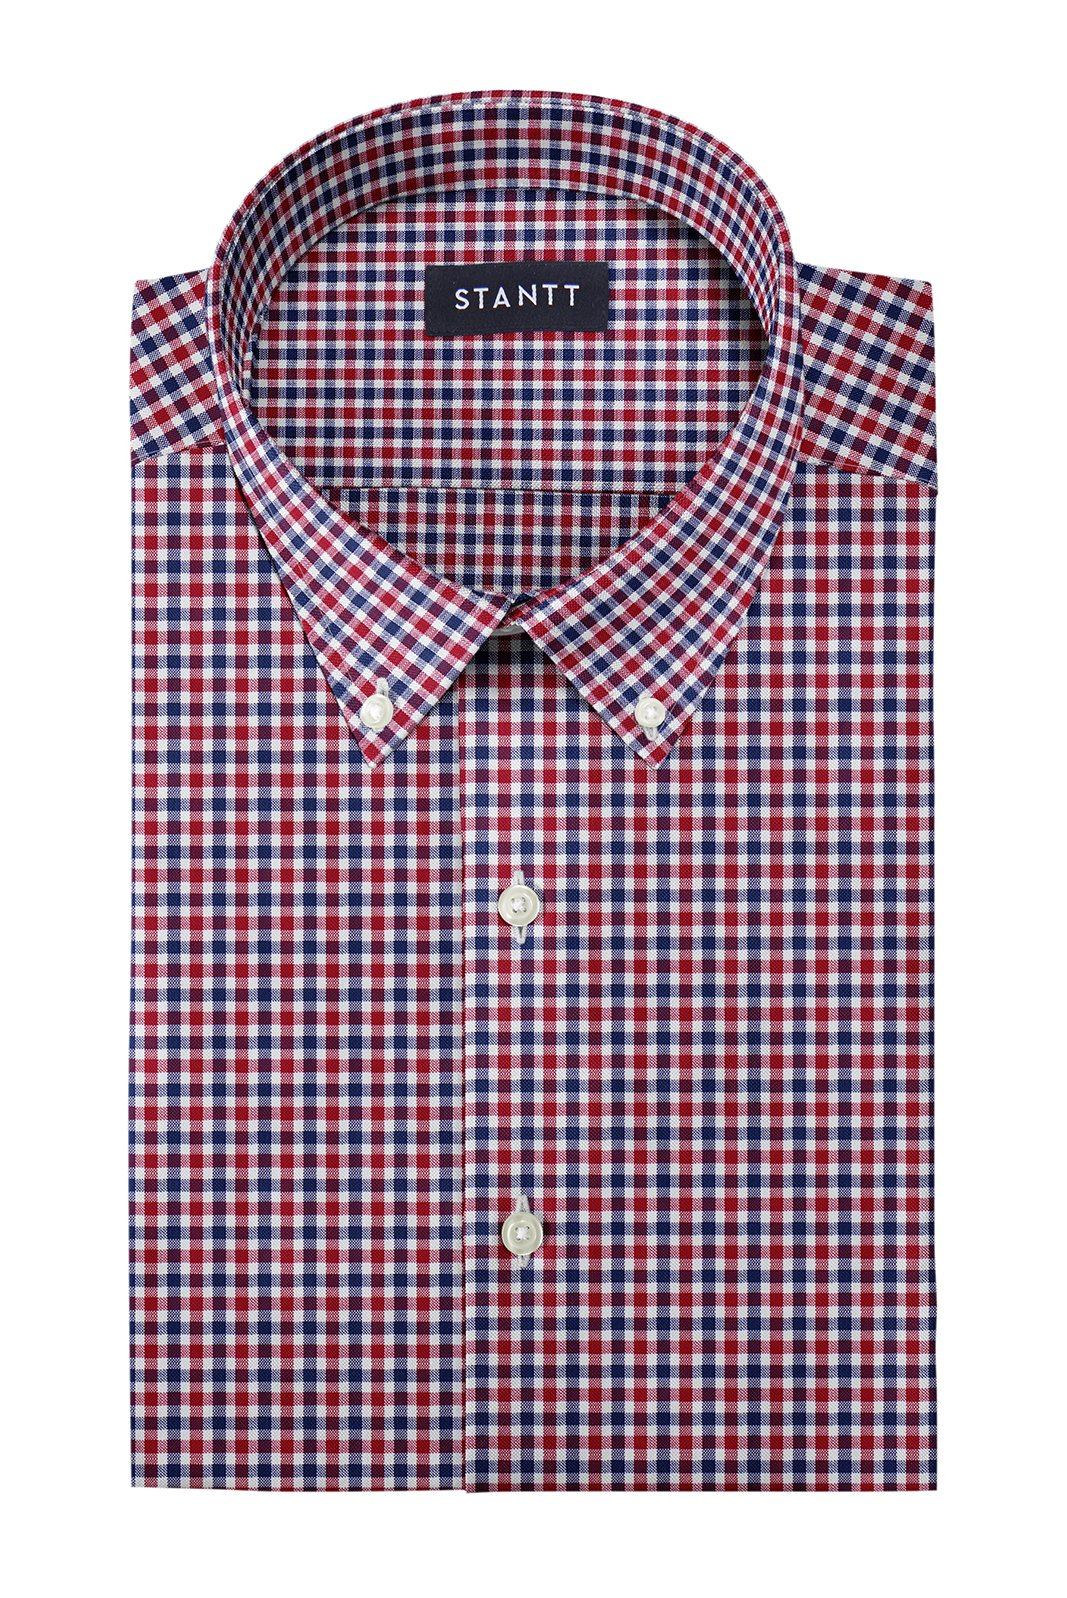 Red and Navy Club Check Oxford: Button-Down Collar, Barrel Cuff